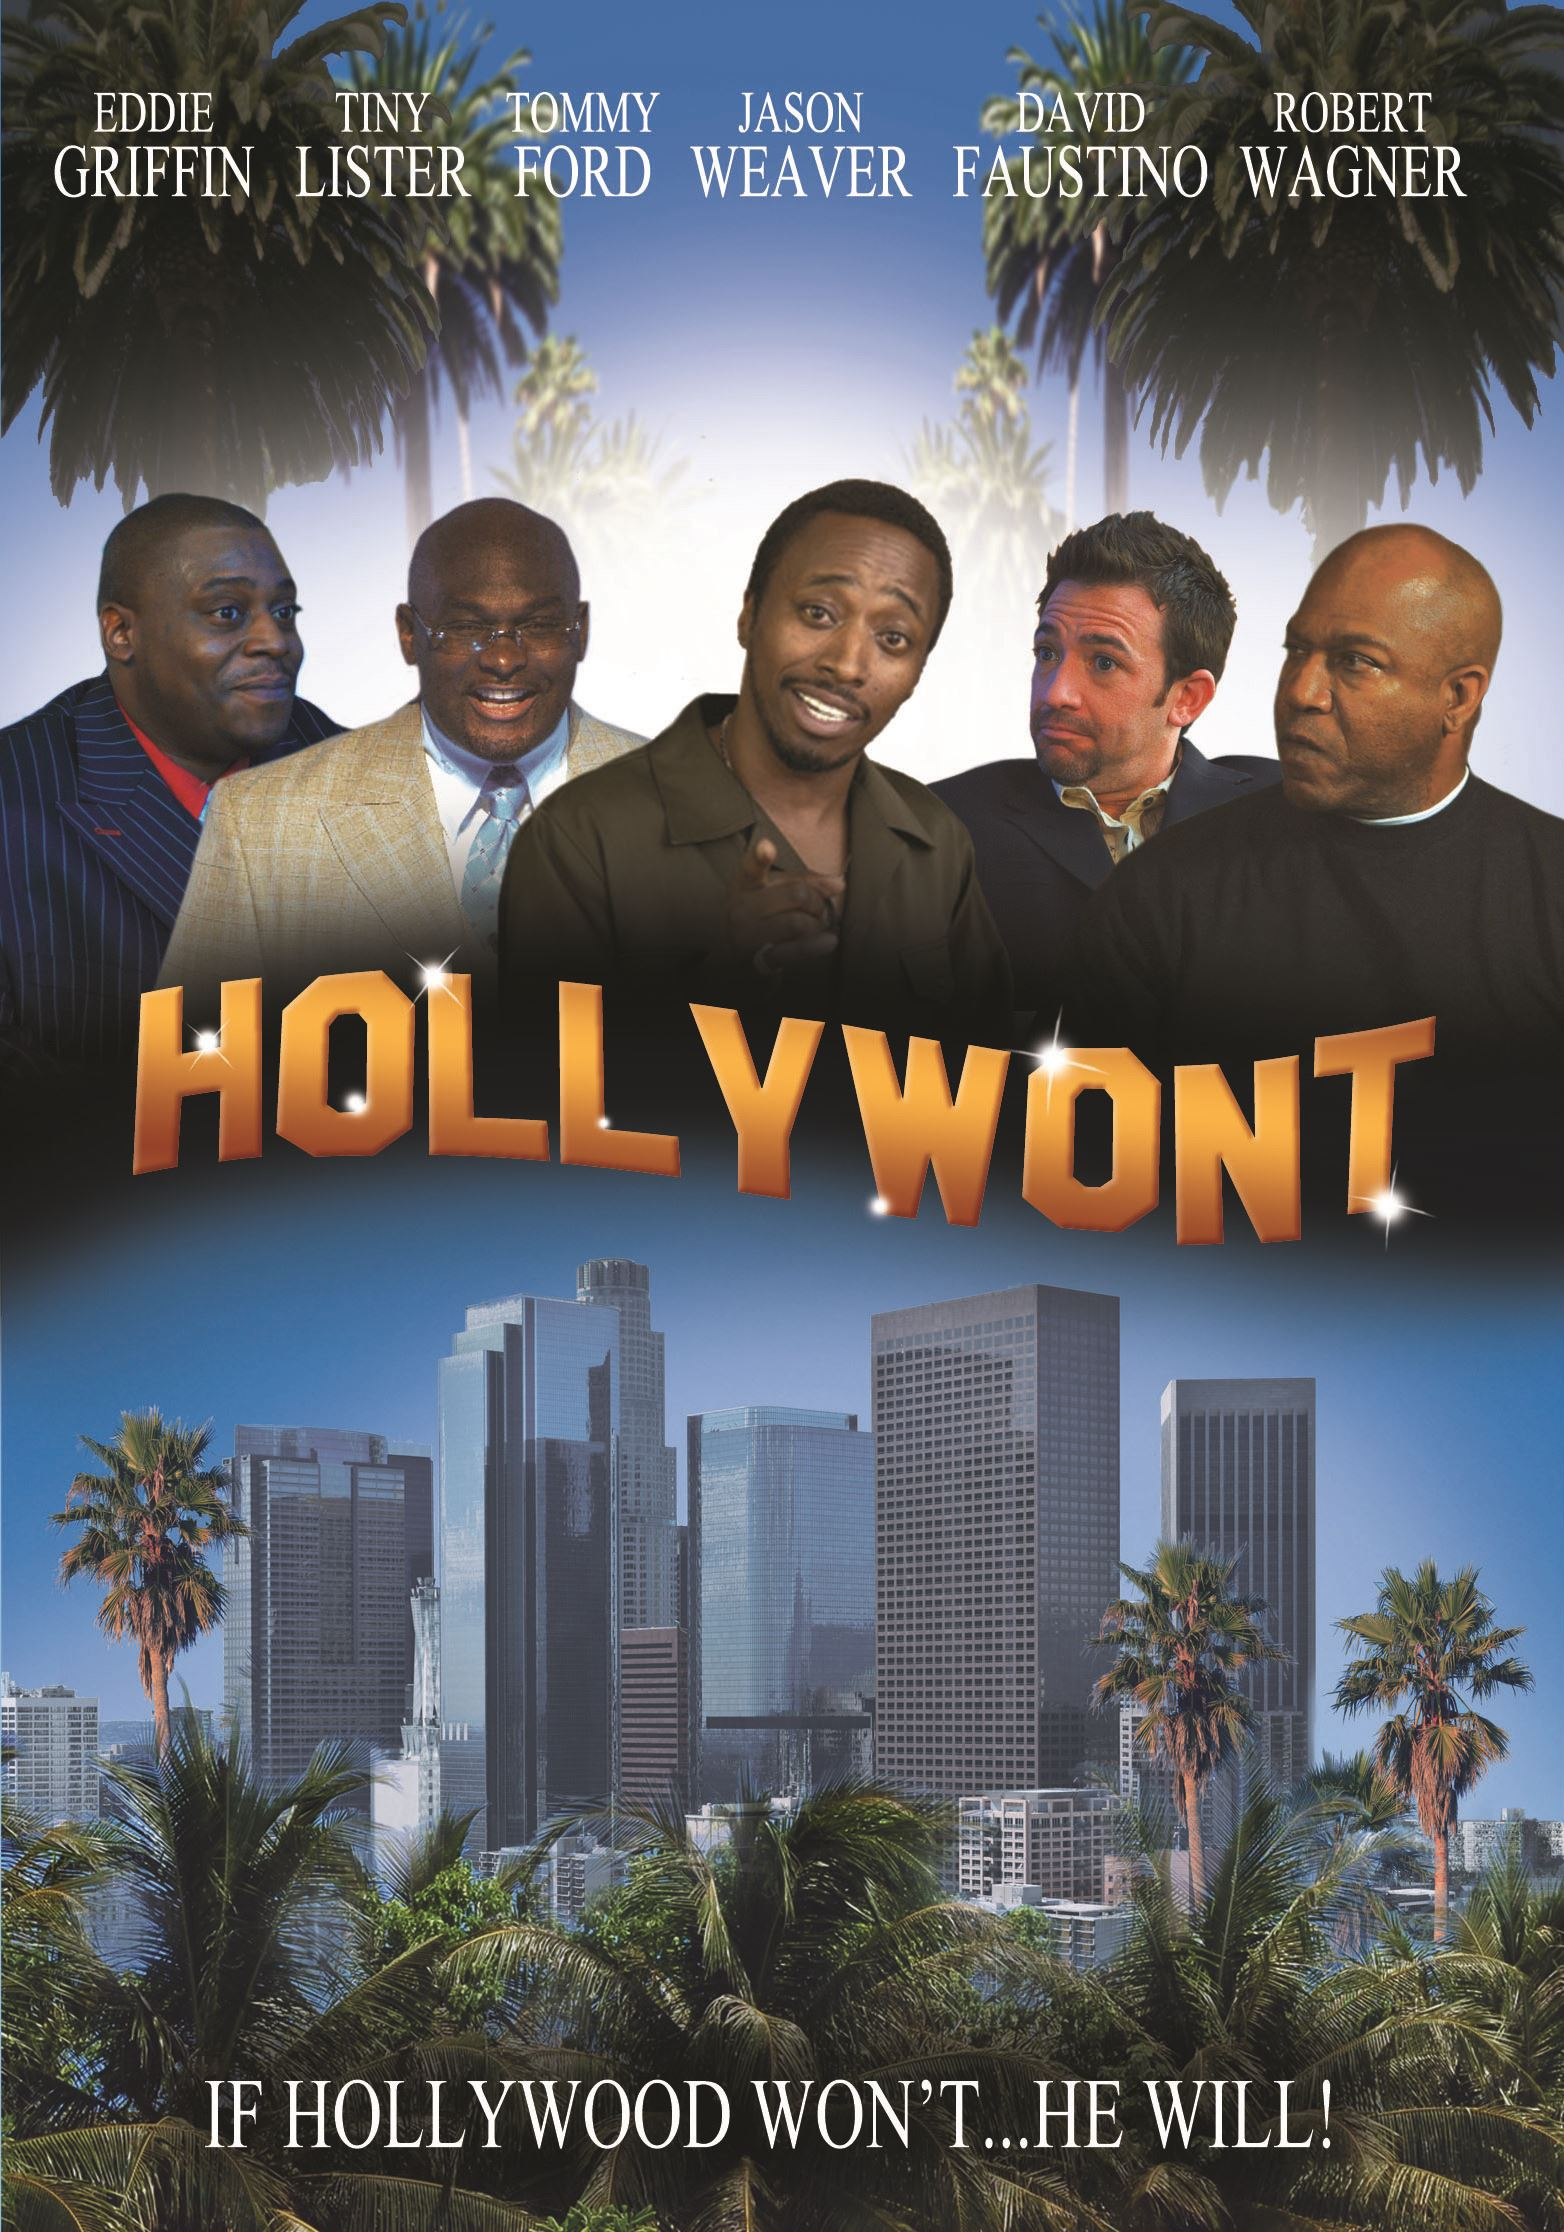 Hollywont (2013)